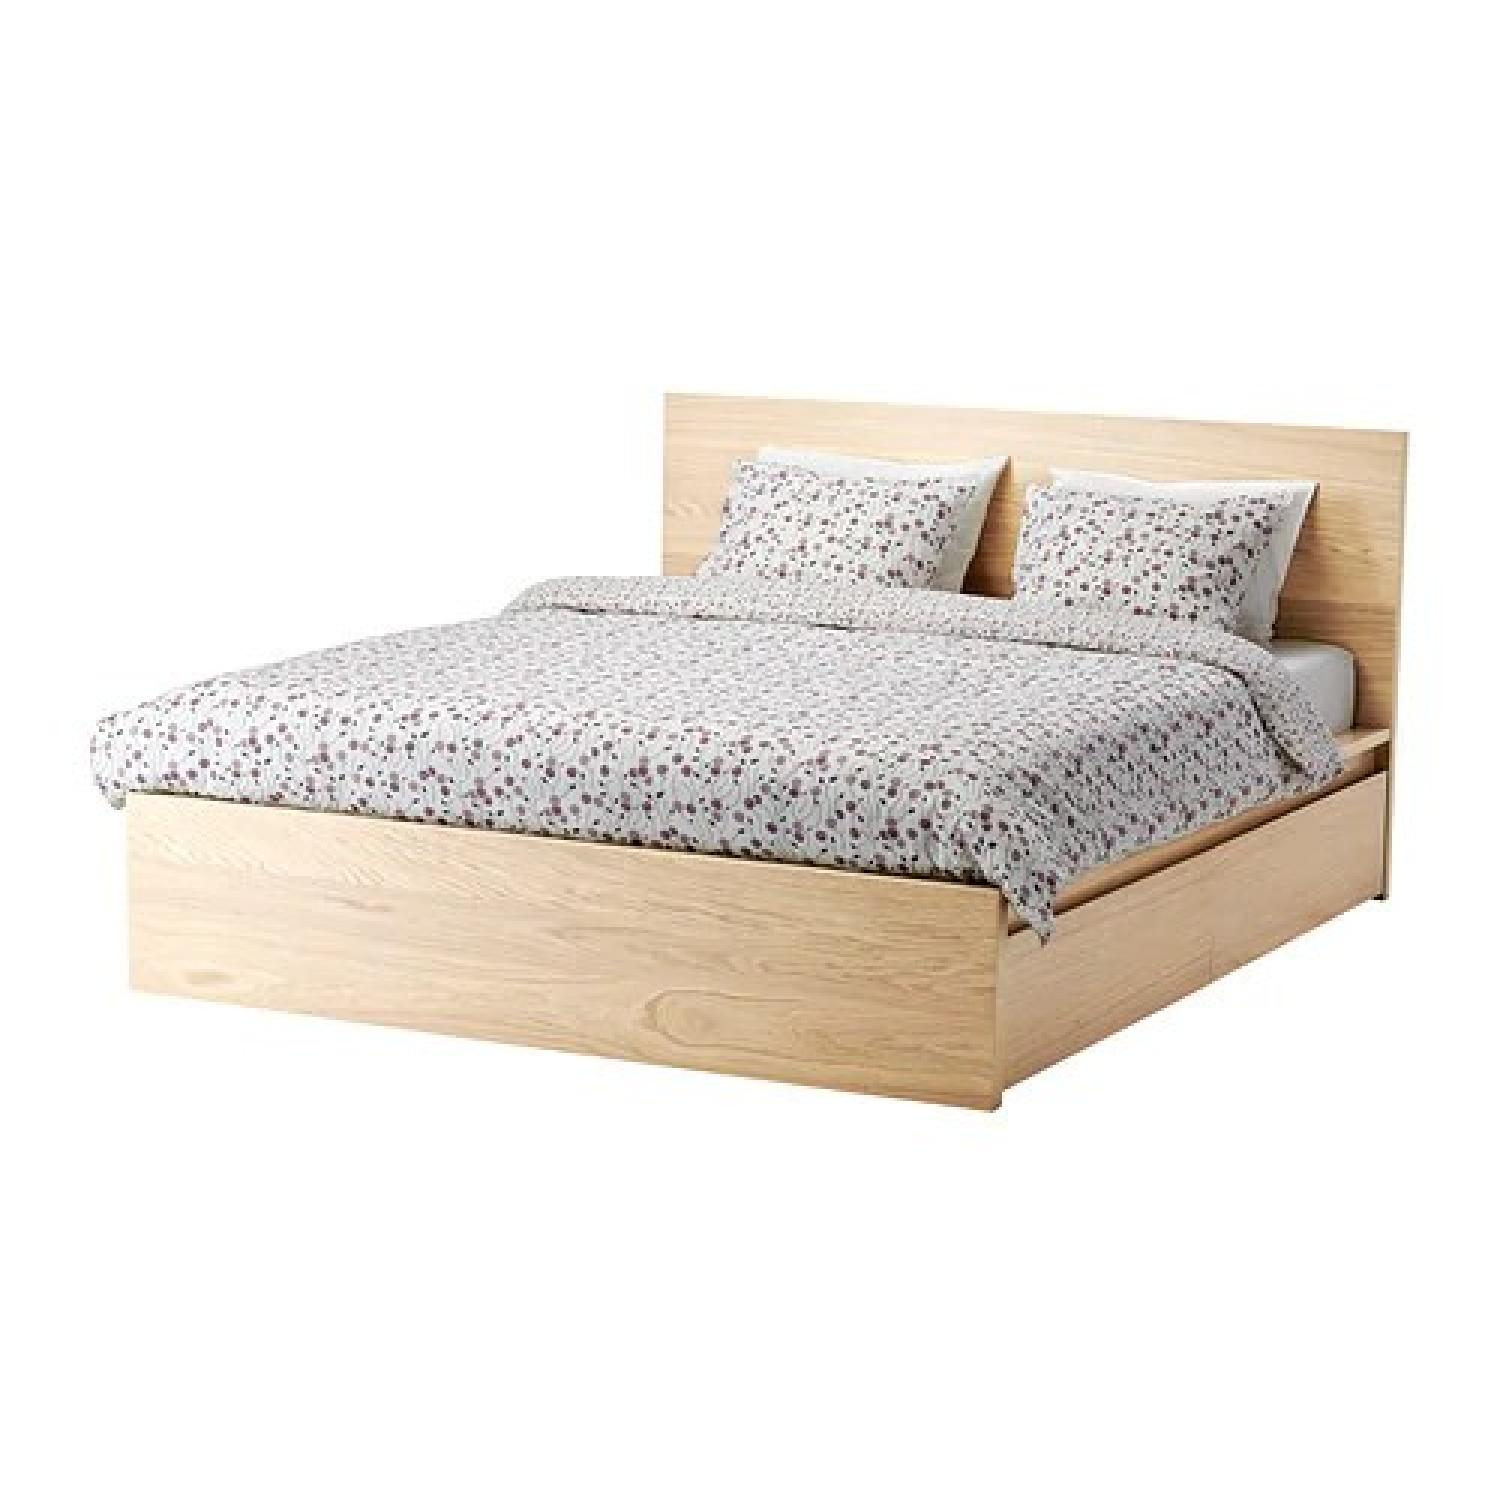 Ikea Malm White Oak Full Bed W/ 2 Drawers ...